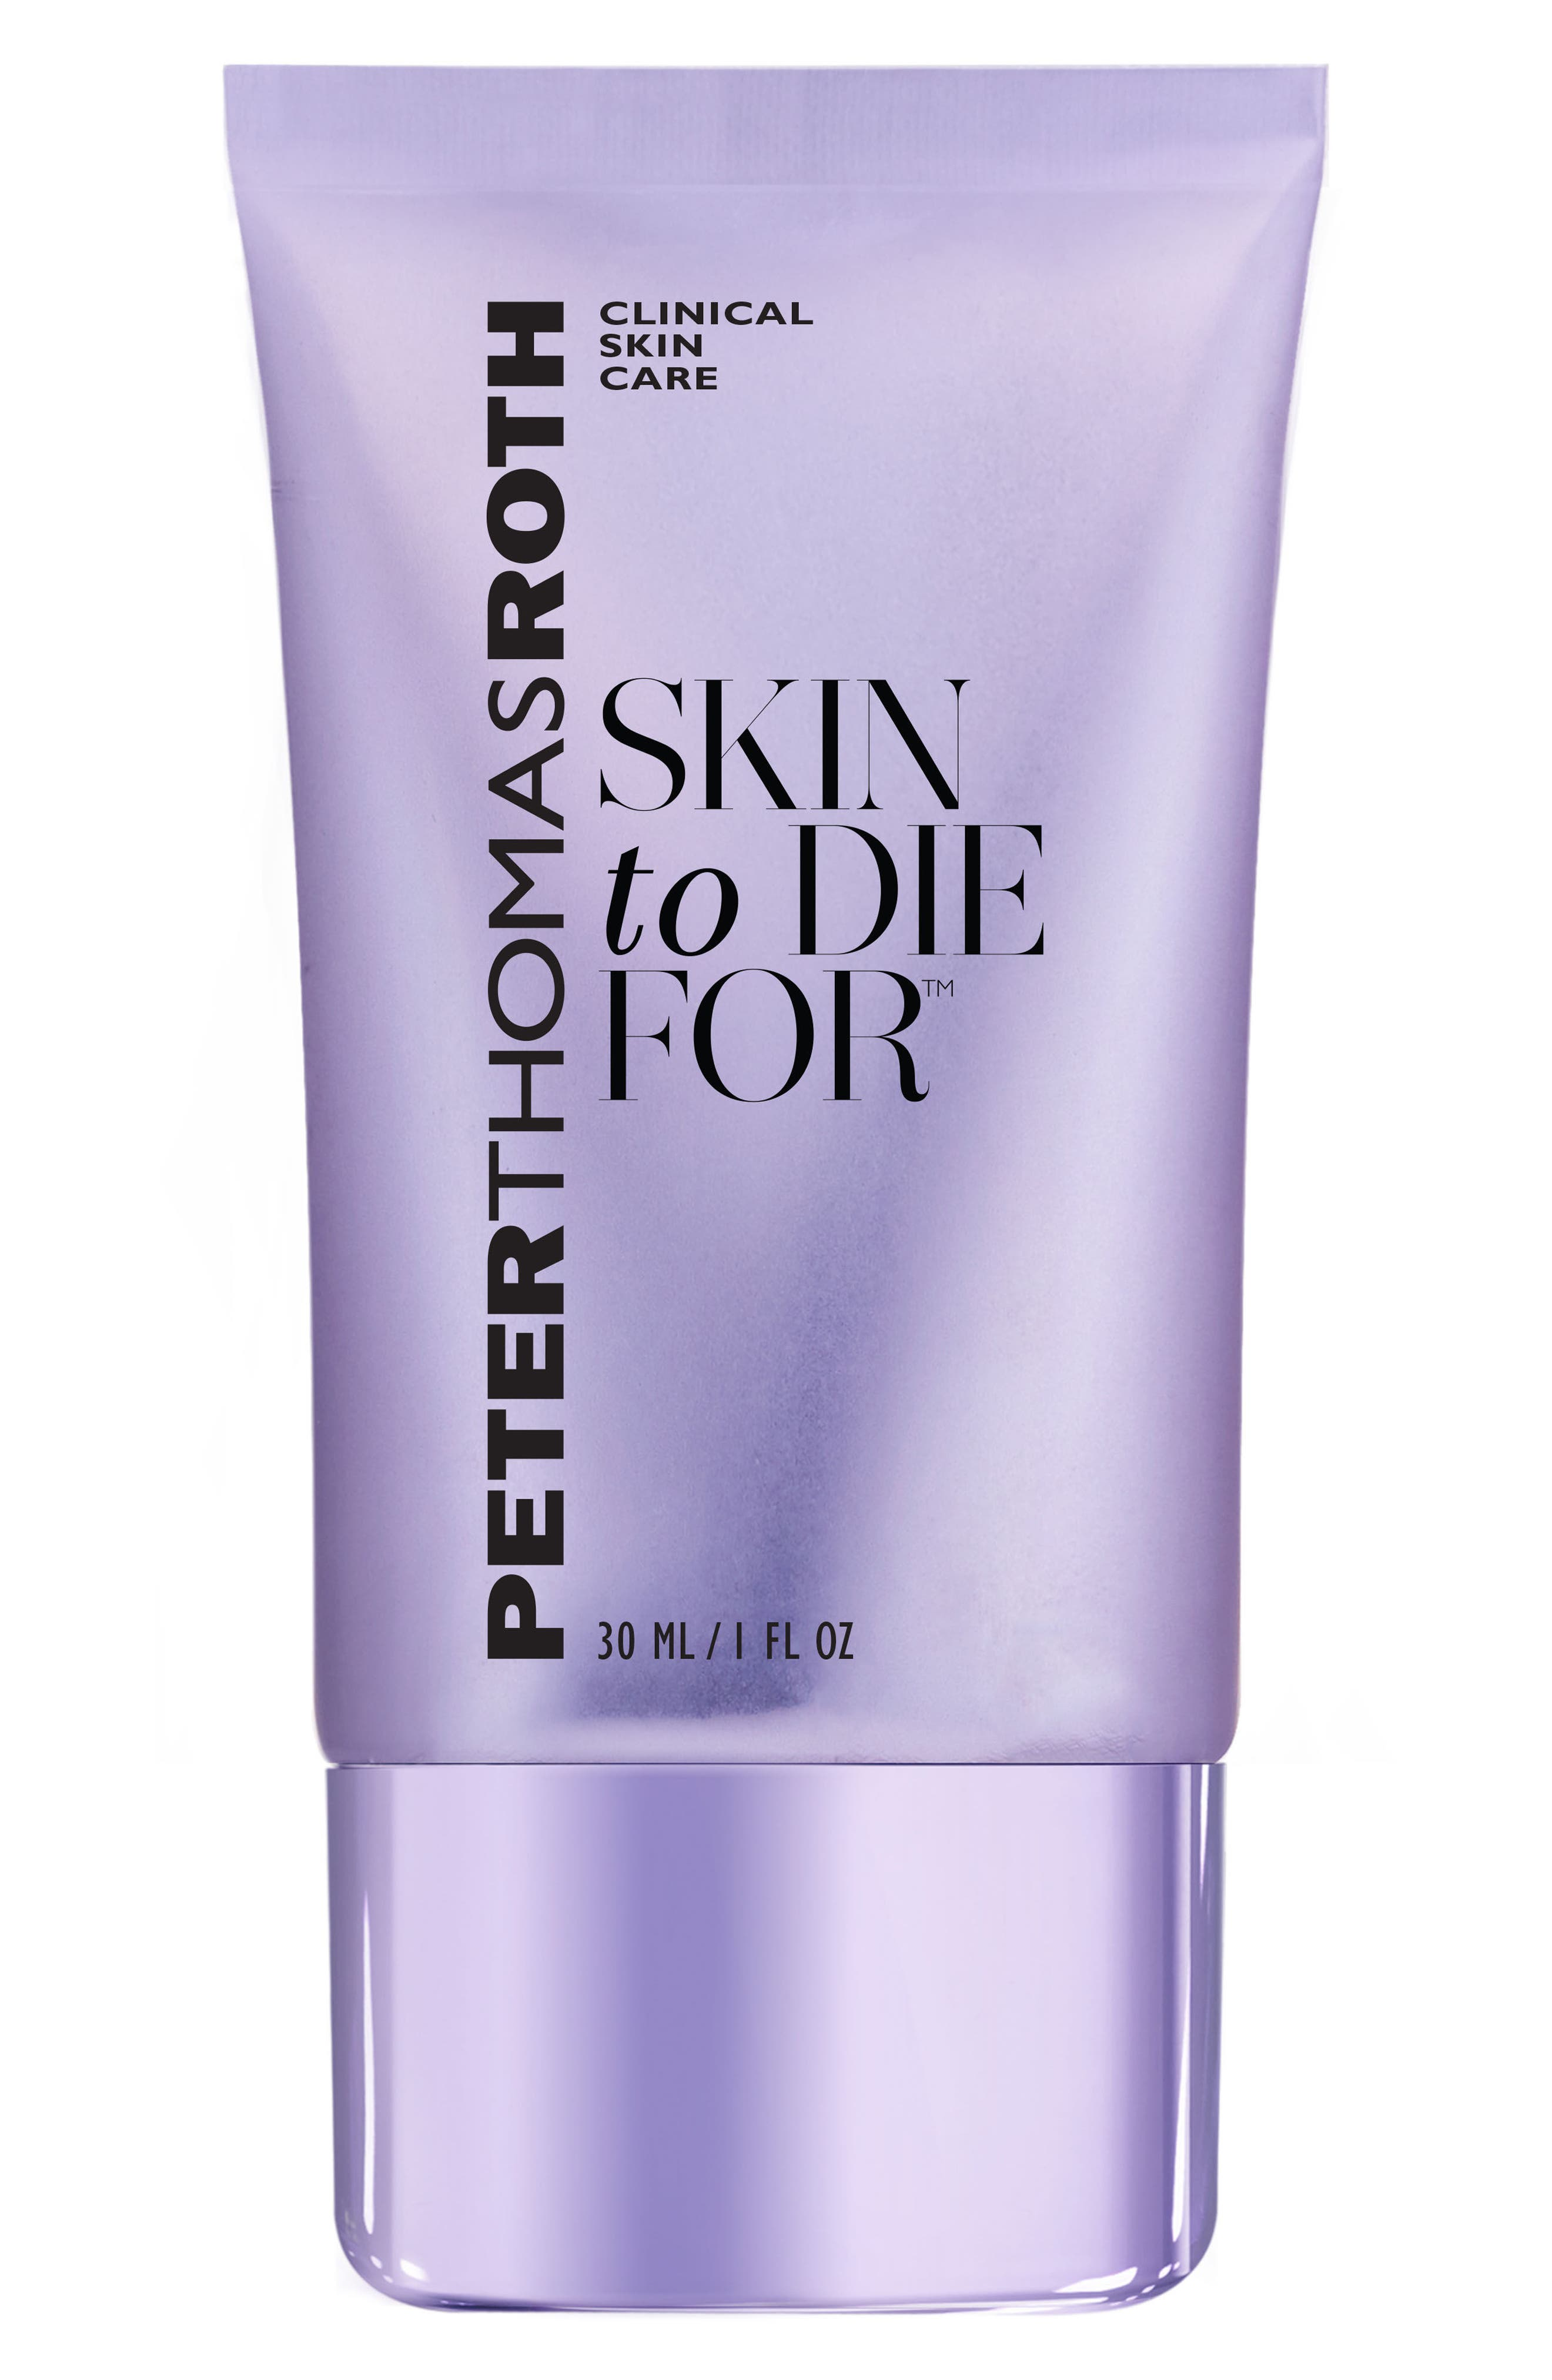 Peter Thomas Roth Skin to Die For Primer & Complexion Corrector